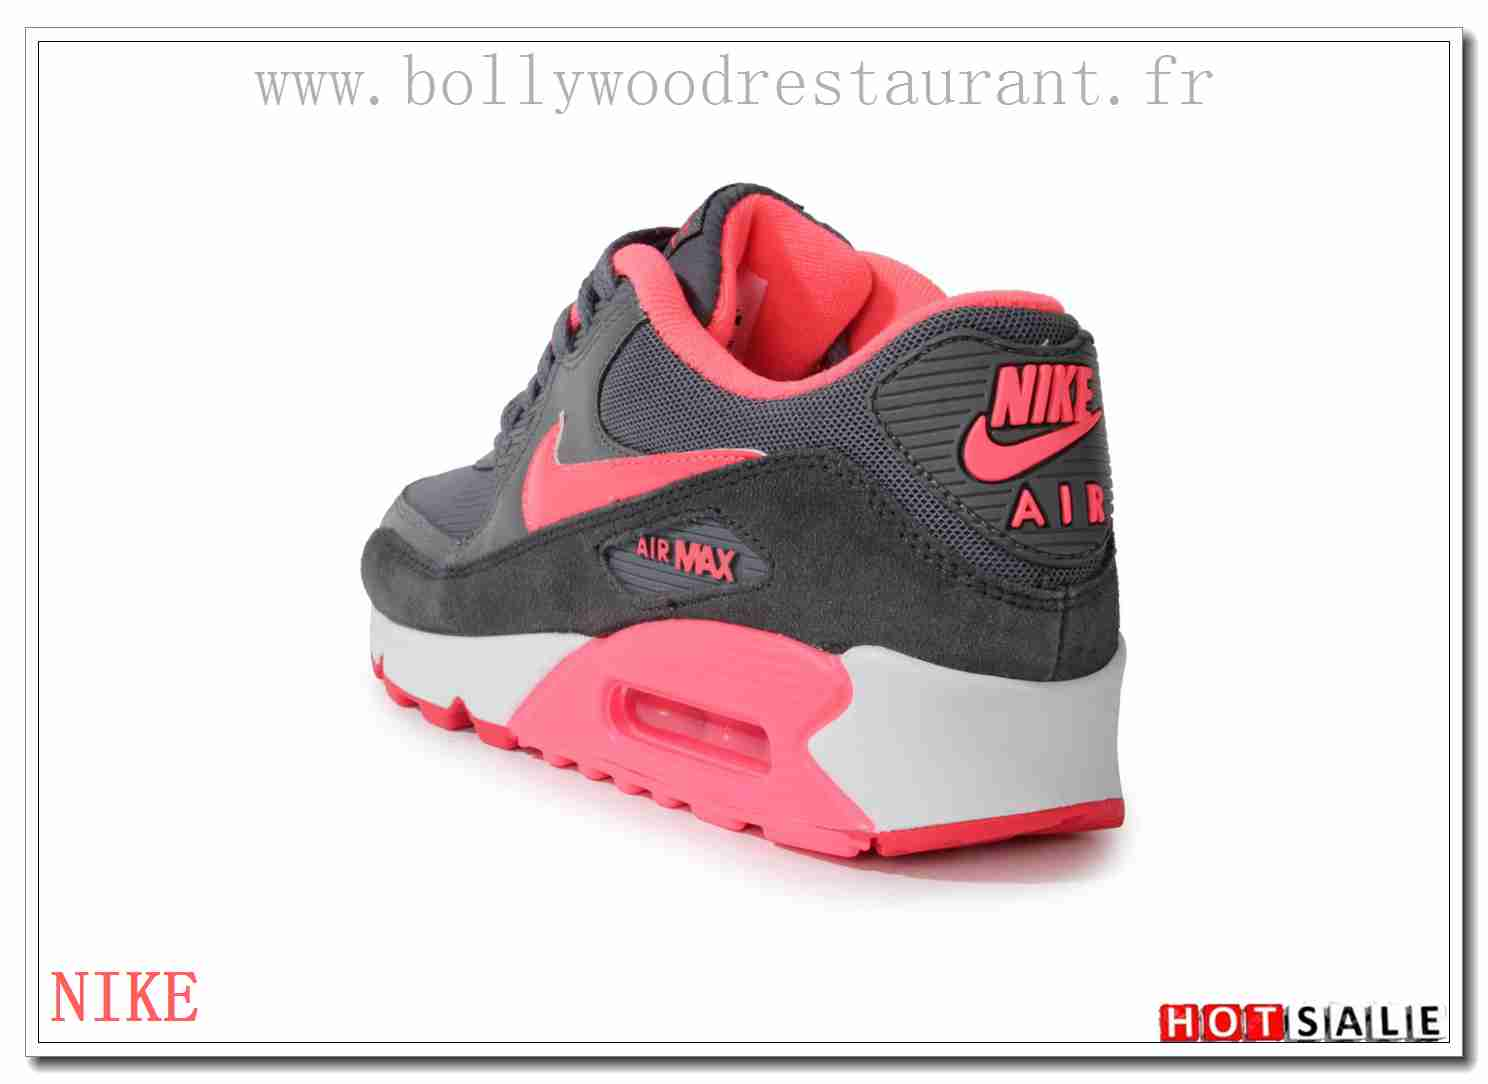 competitive price 232f3 2aef3 ZU4922 Respirant 2018 Nouveau style Nike Air Max 90 - Femme Chaussures -  Promotions Vente -